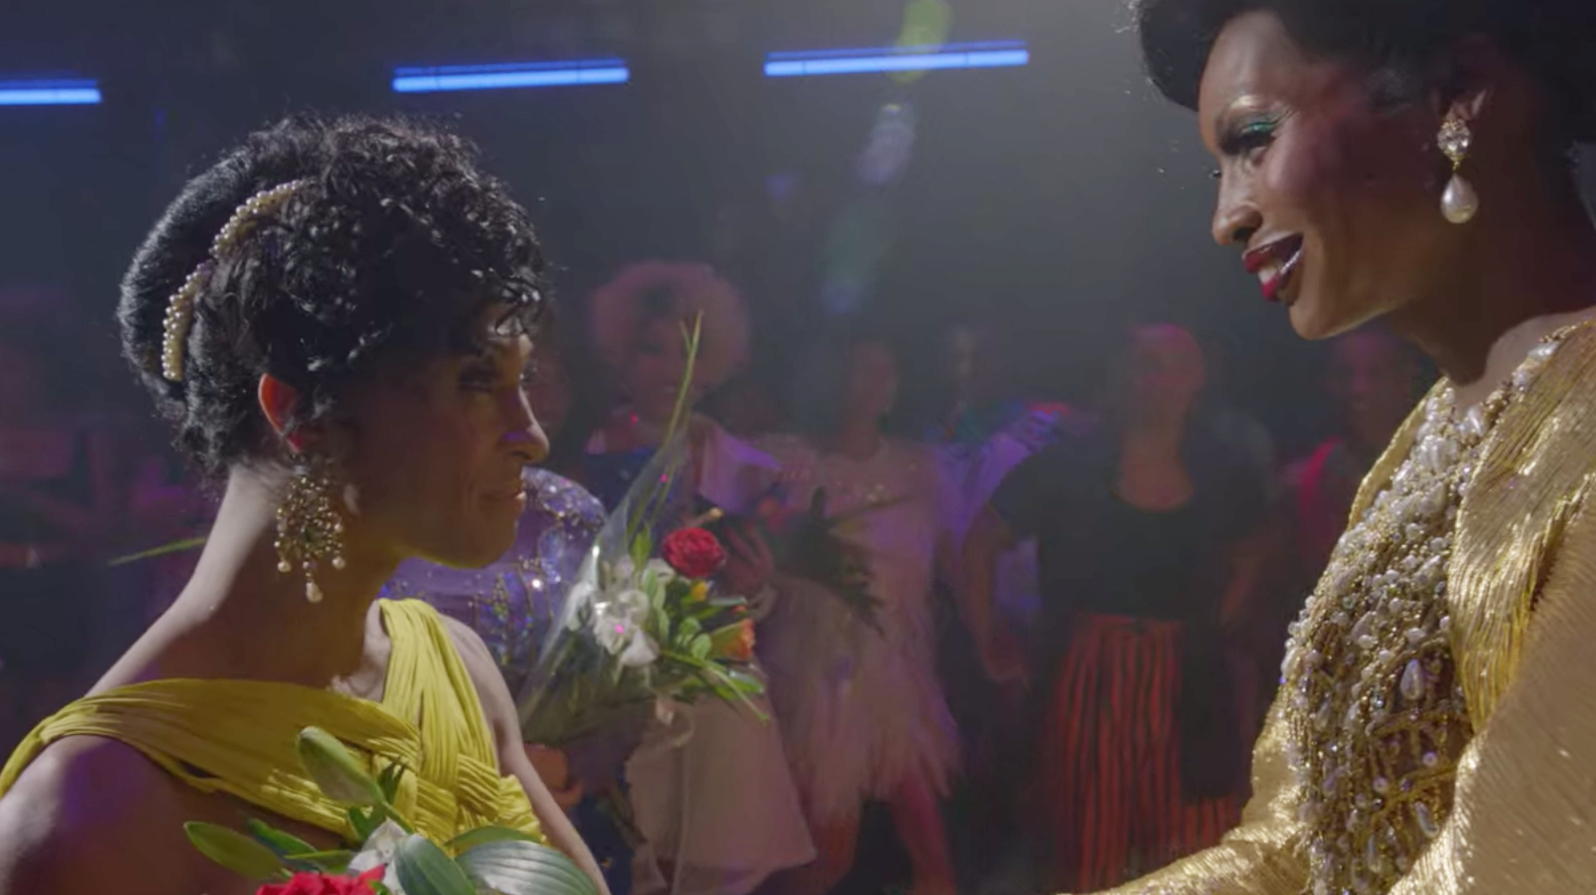 Mj Rodriguez and Dominique Jackson as Blanca Evangelista and Elektra Abundance smiling at each other at a ball